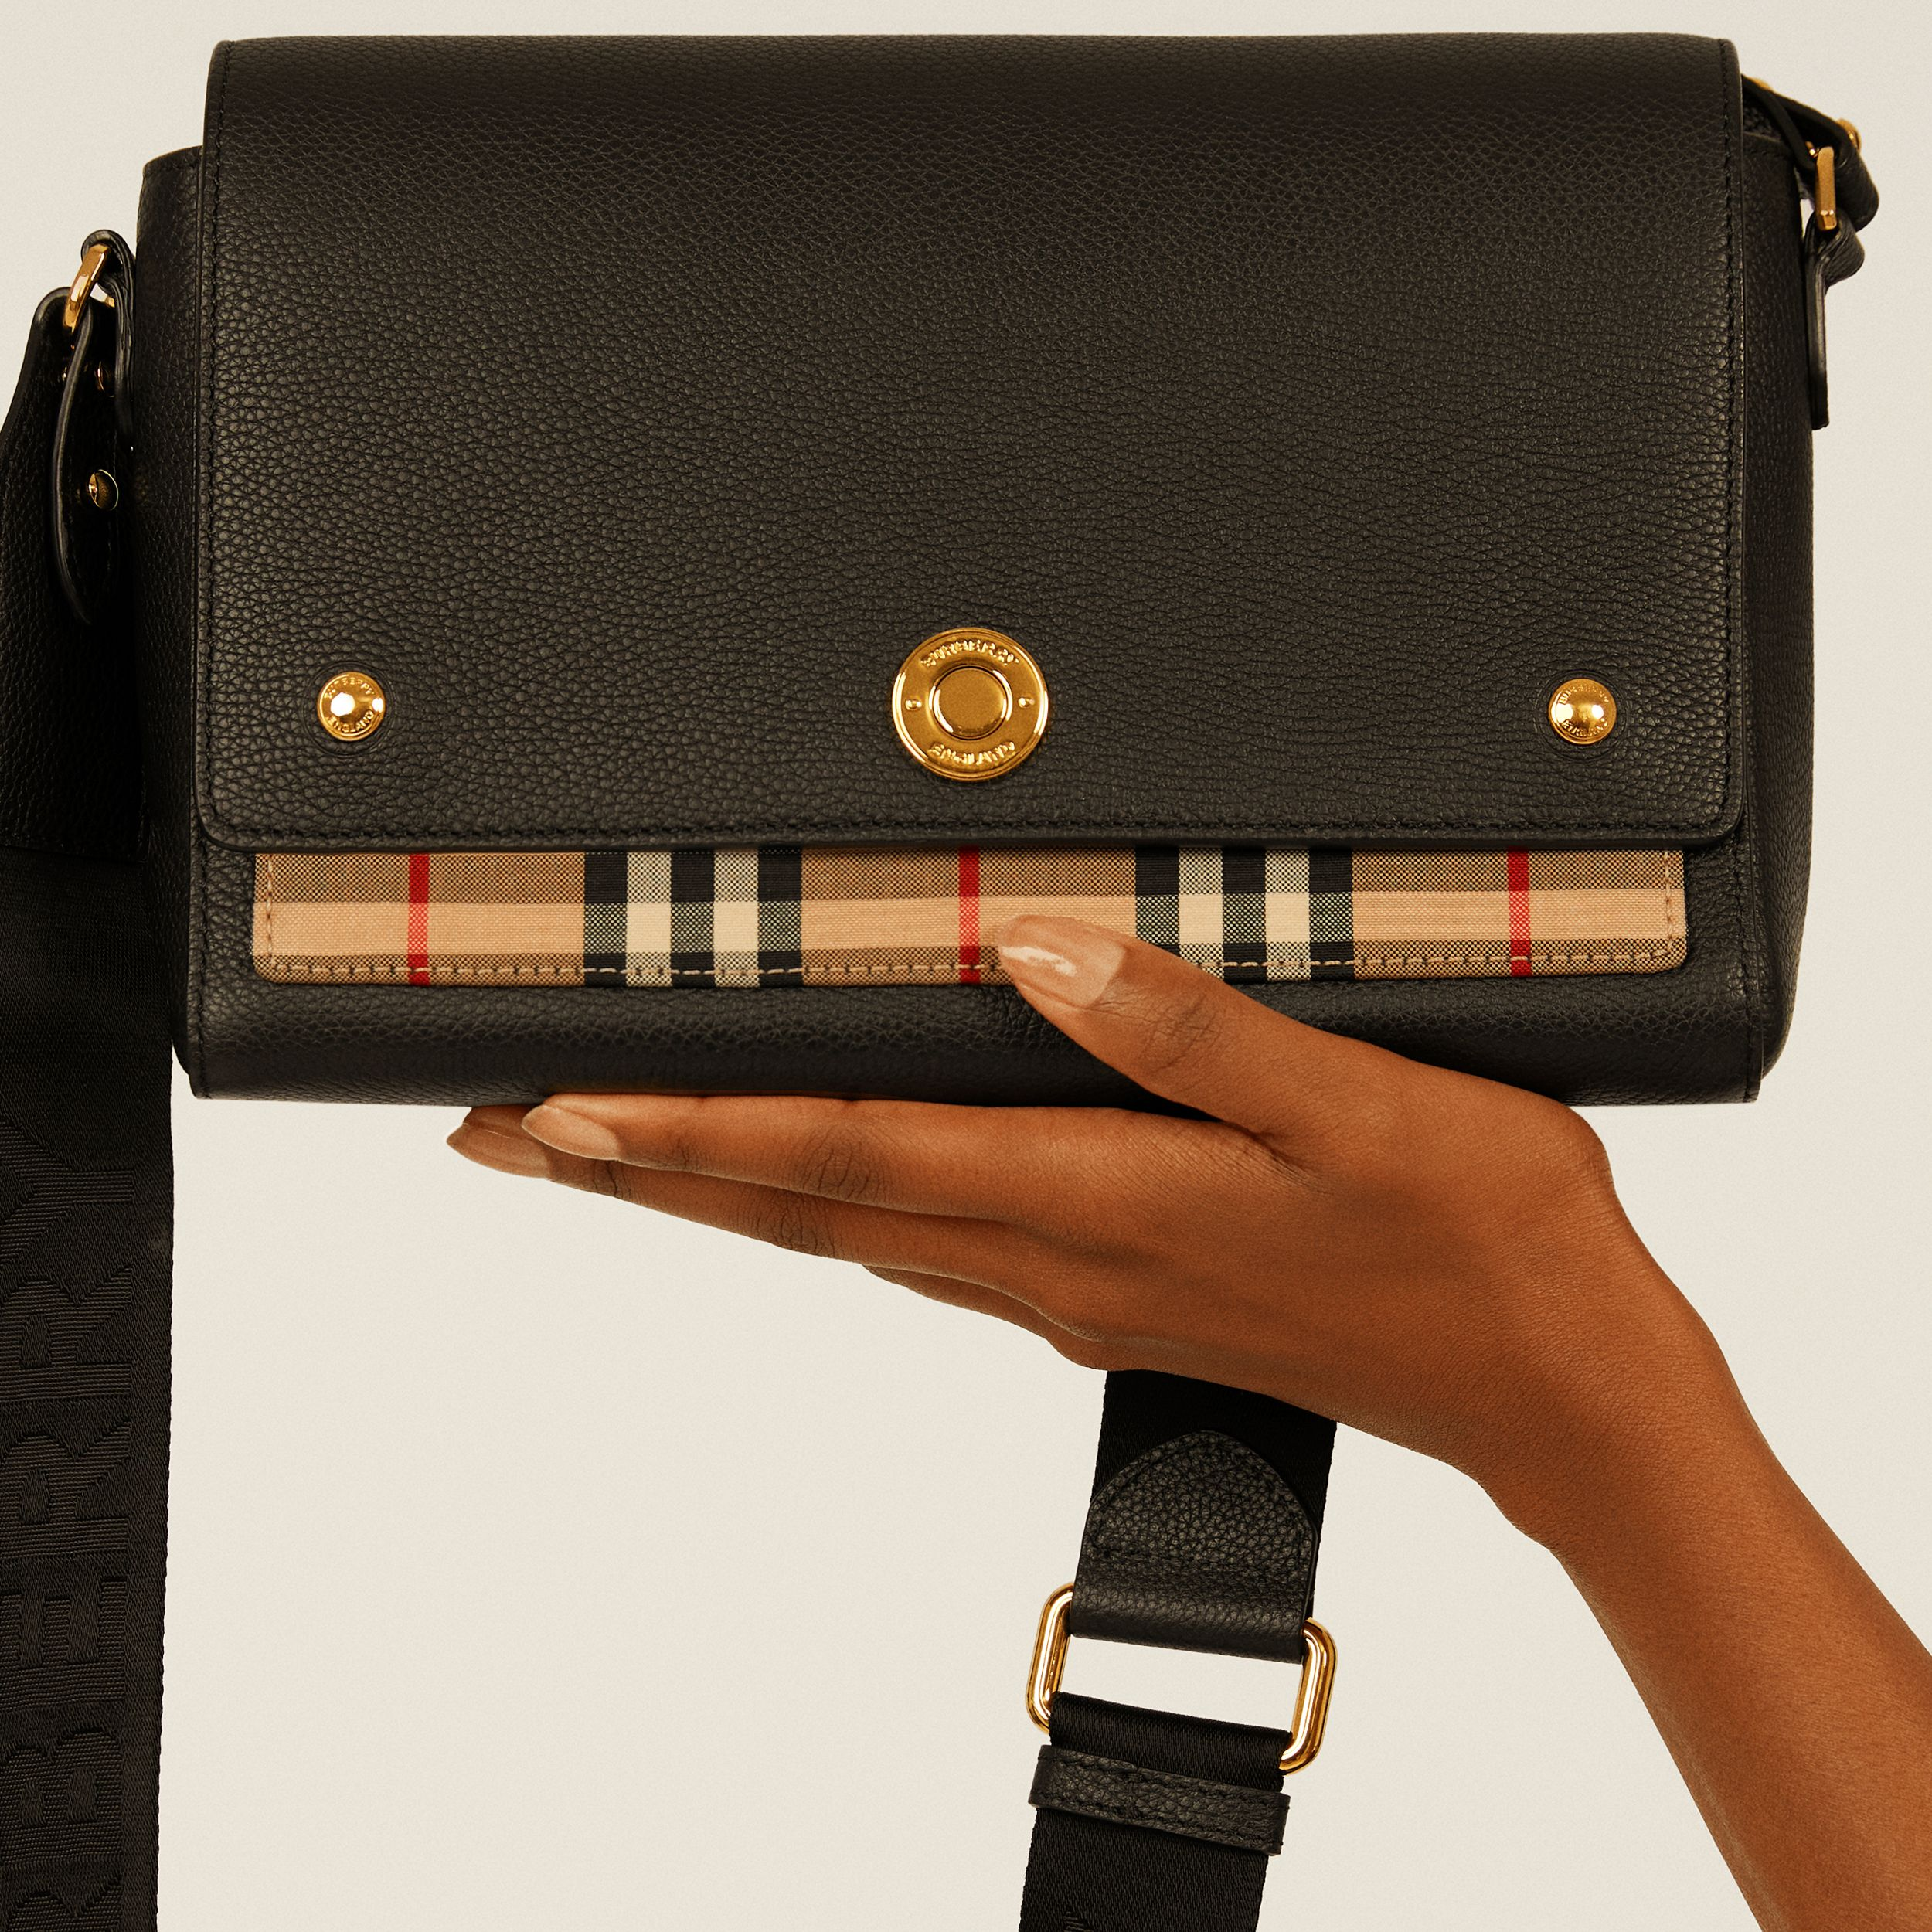 Leather and Vintage Check Note Crossbody Bag in Black - Women | Burberry Australia - 2